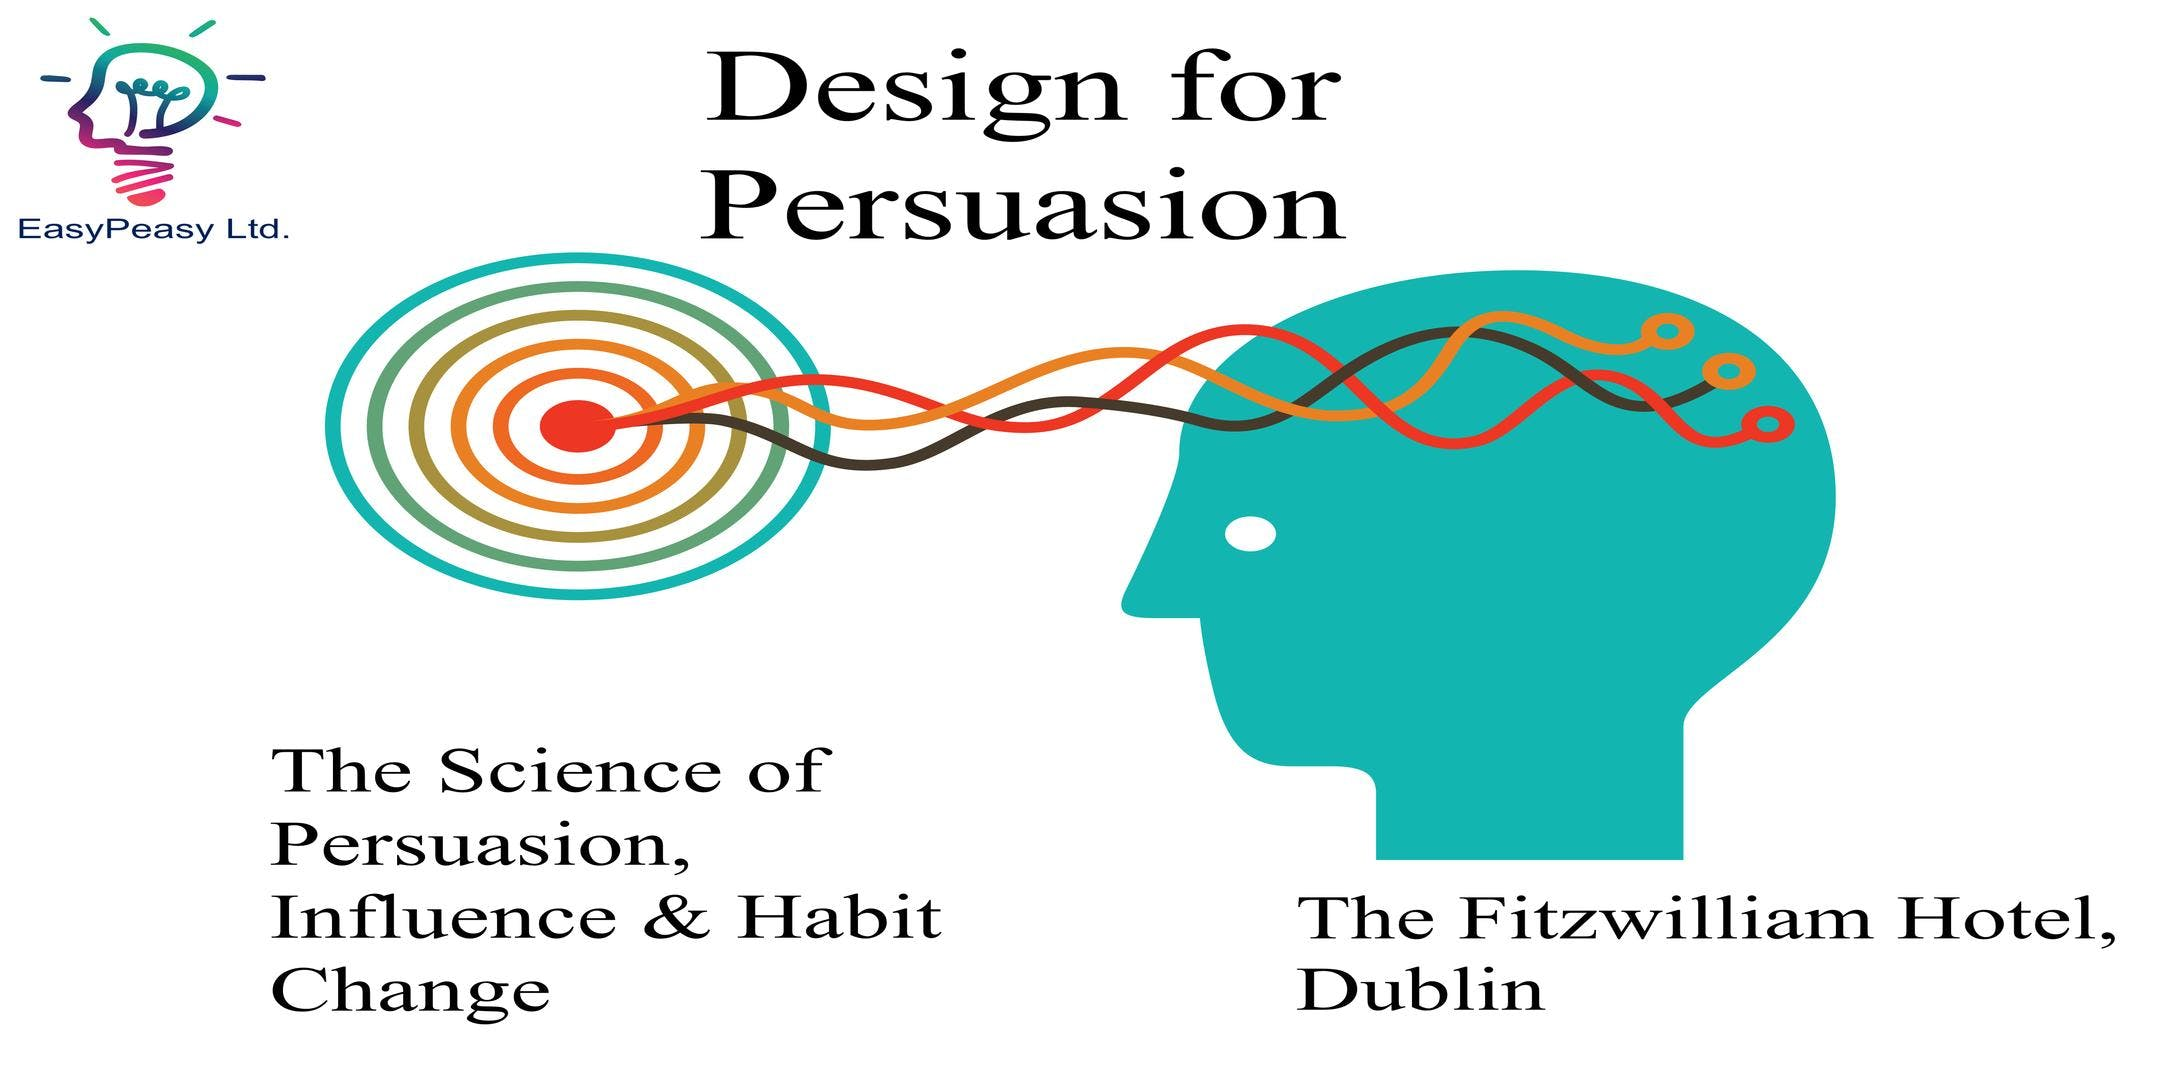 Design for Persuasion: The Science of Persuasion, Influence & Habit Change